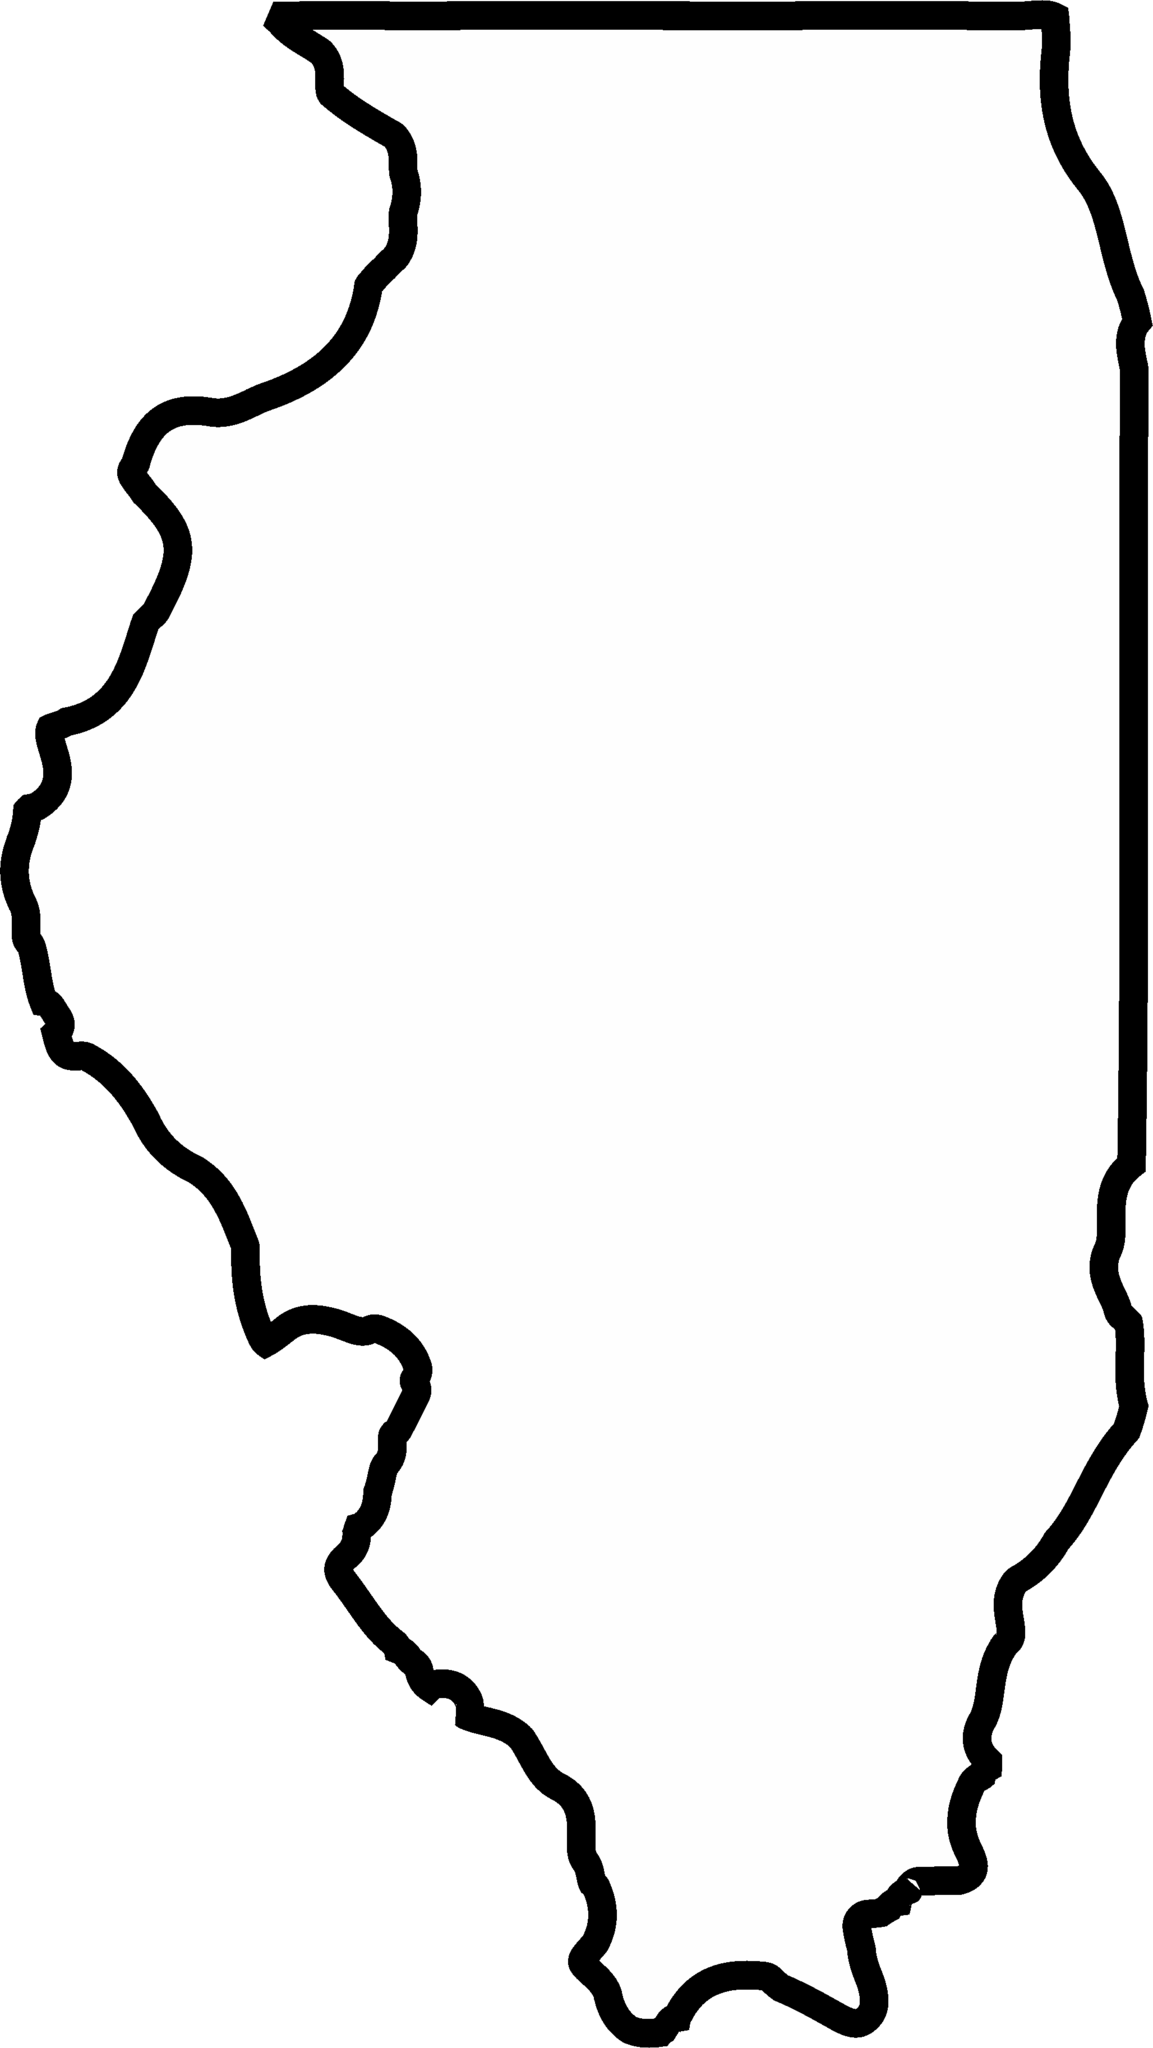 Illinois Png (105+ images in Collection) Page 1.